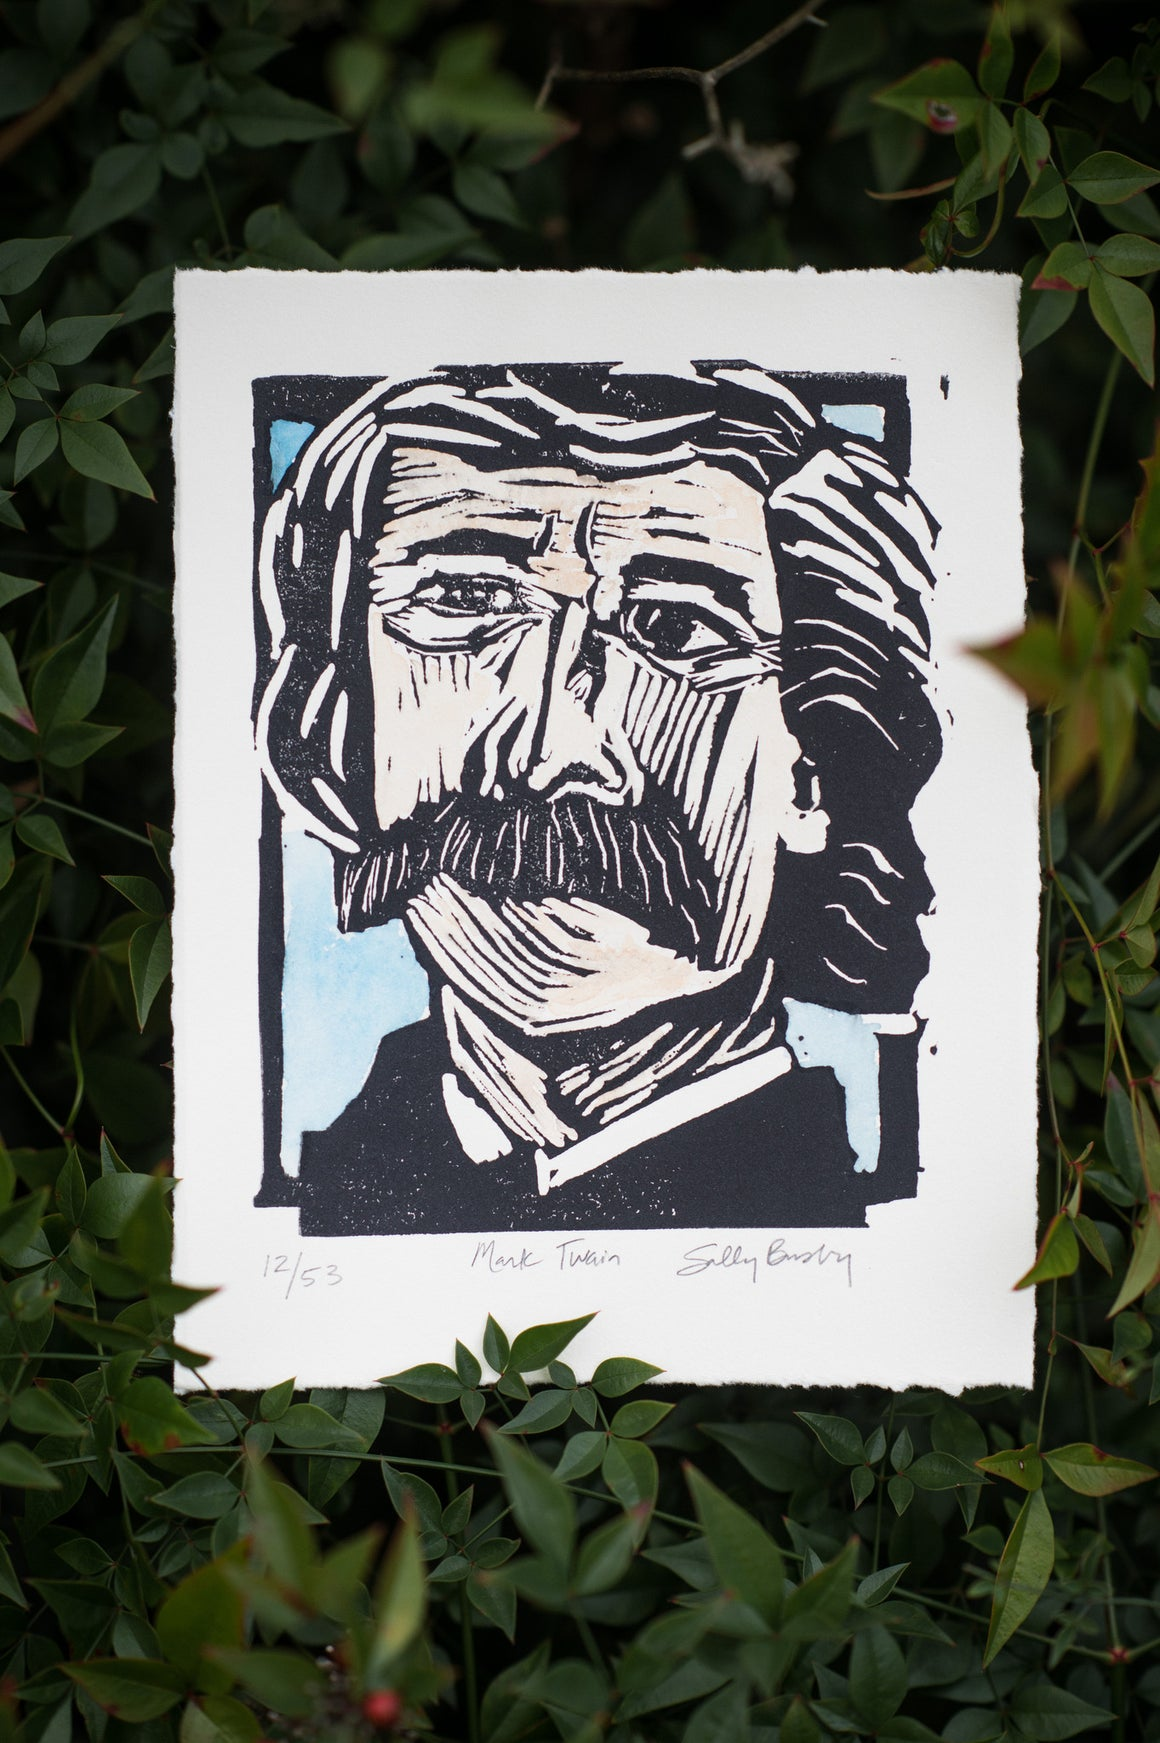 Mark Twain Linocut Print, Watercolored